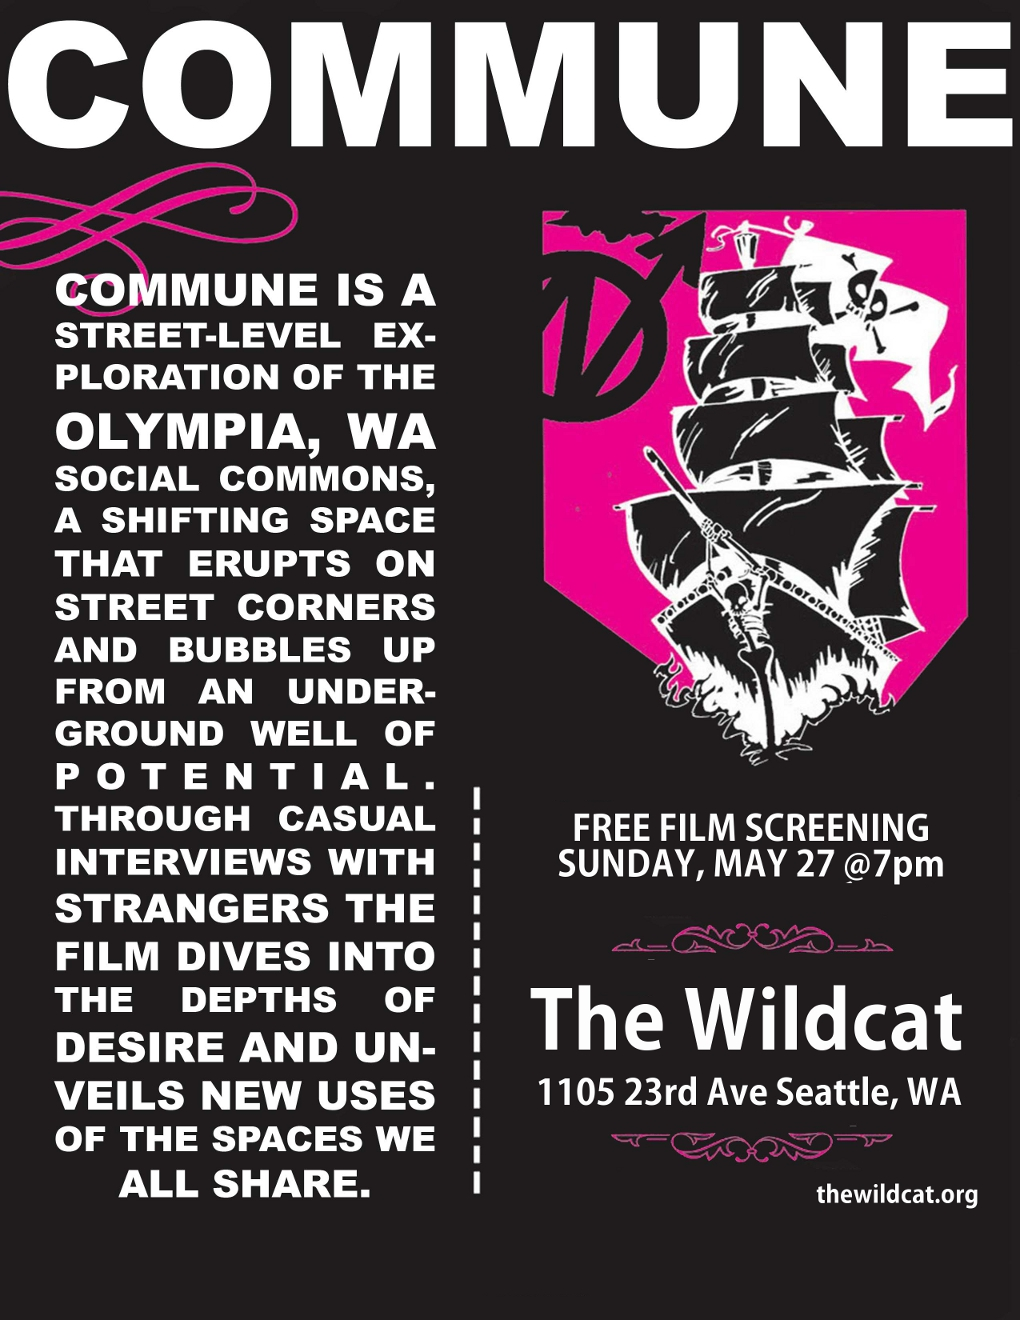 MAY 27 COMMUNE at the WILDCAT, SEATTLE